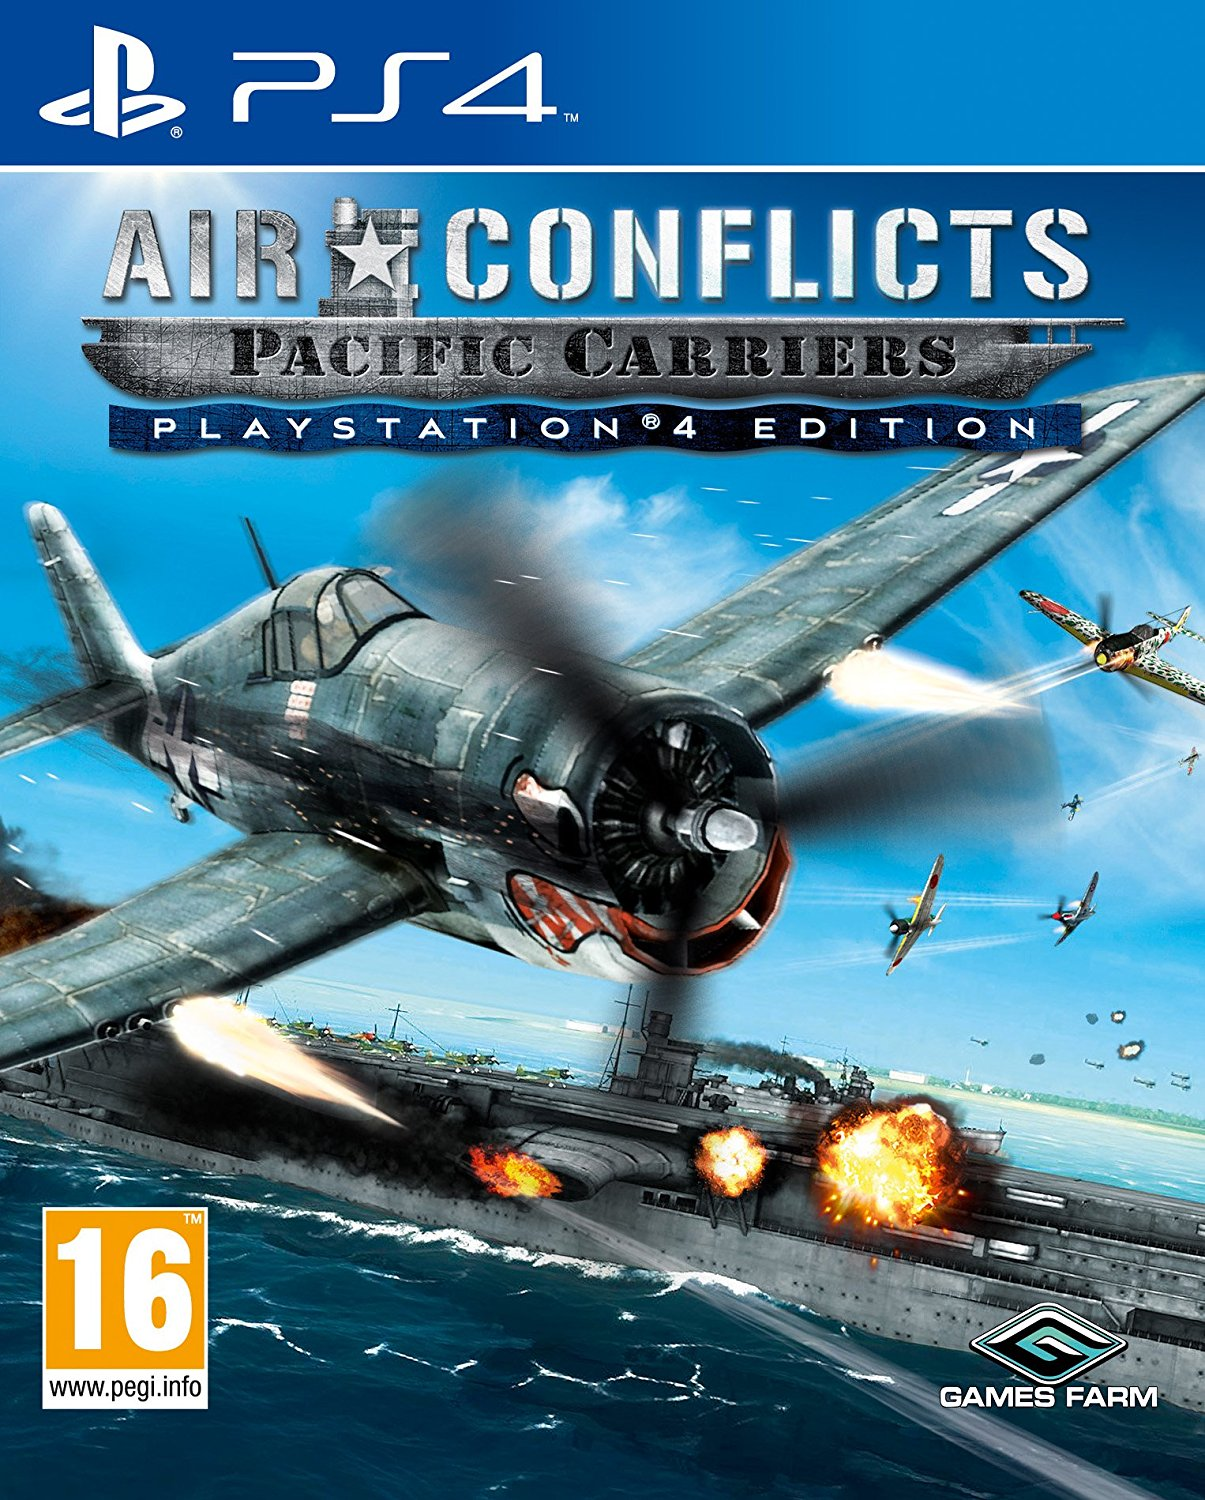 Air Conflicts Pacific Carriers - PlayStation 4 Játékok